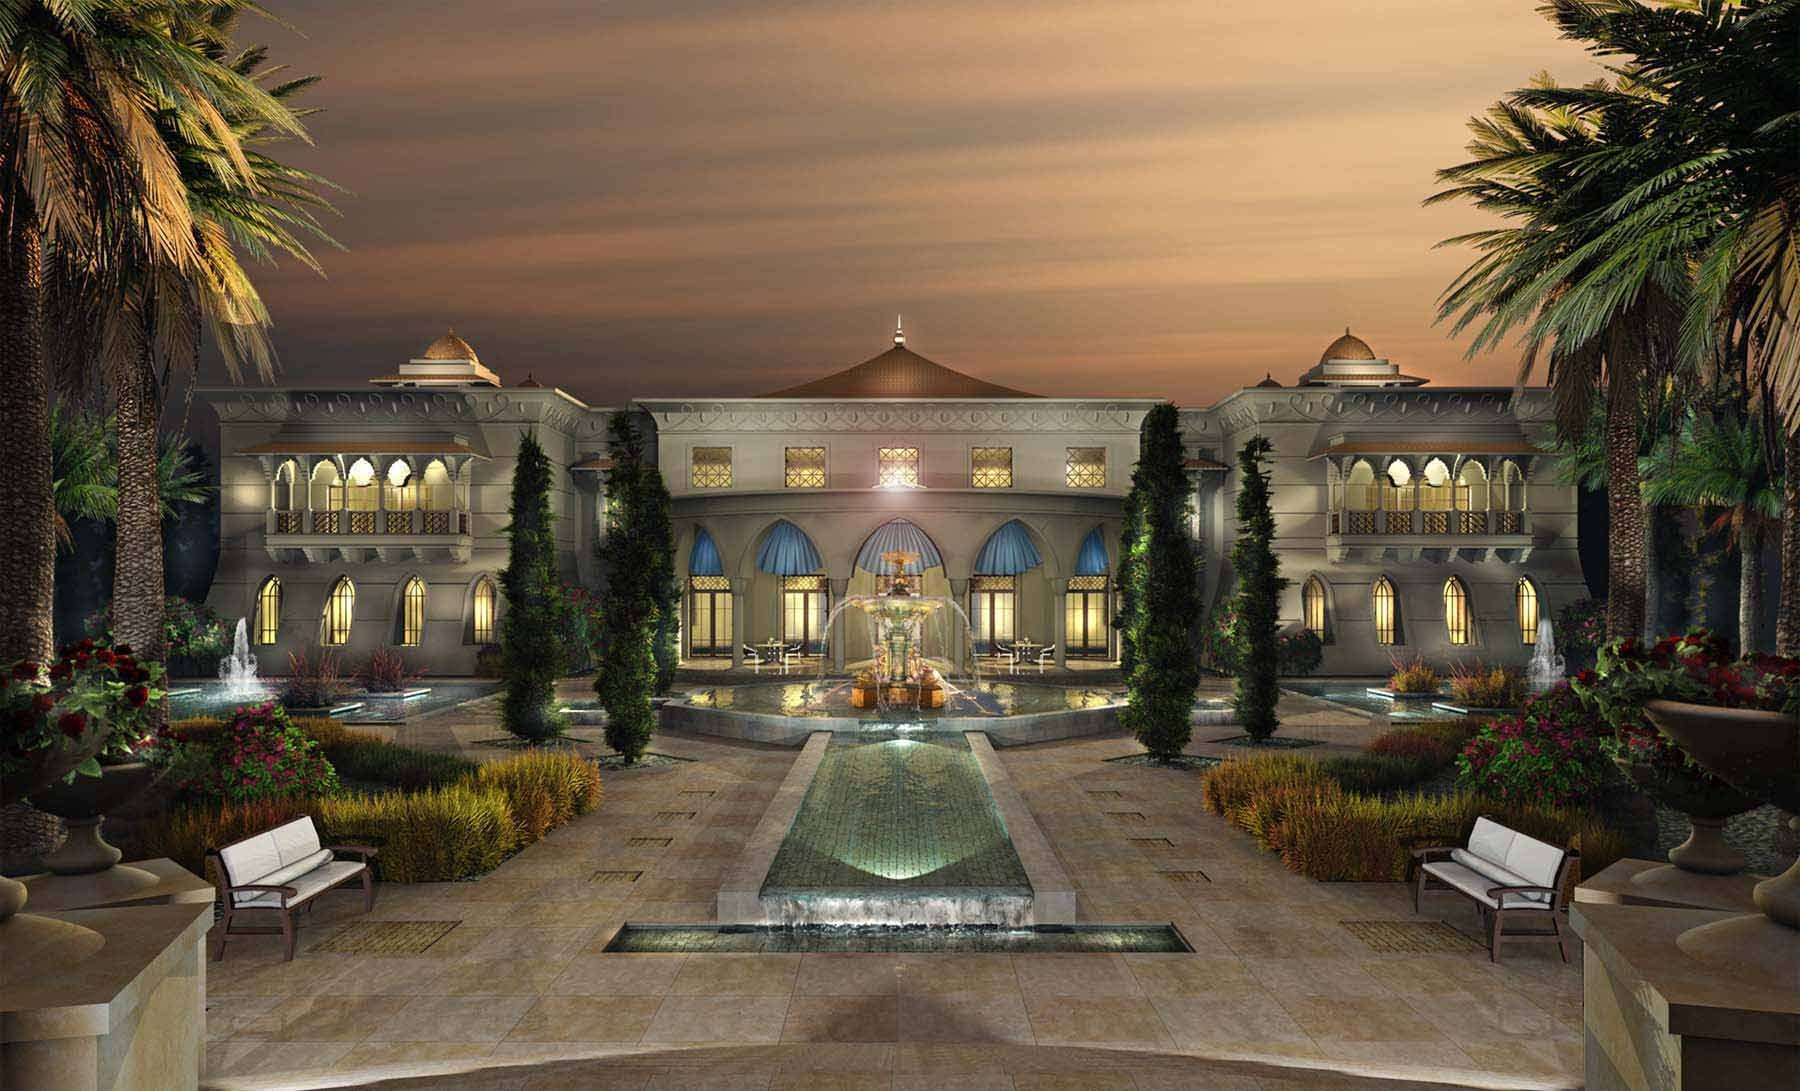 Private resort near Jeddah, Saudi Arabia